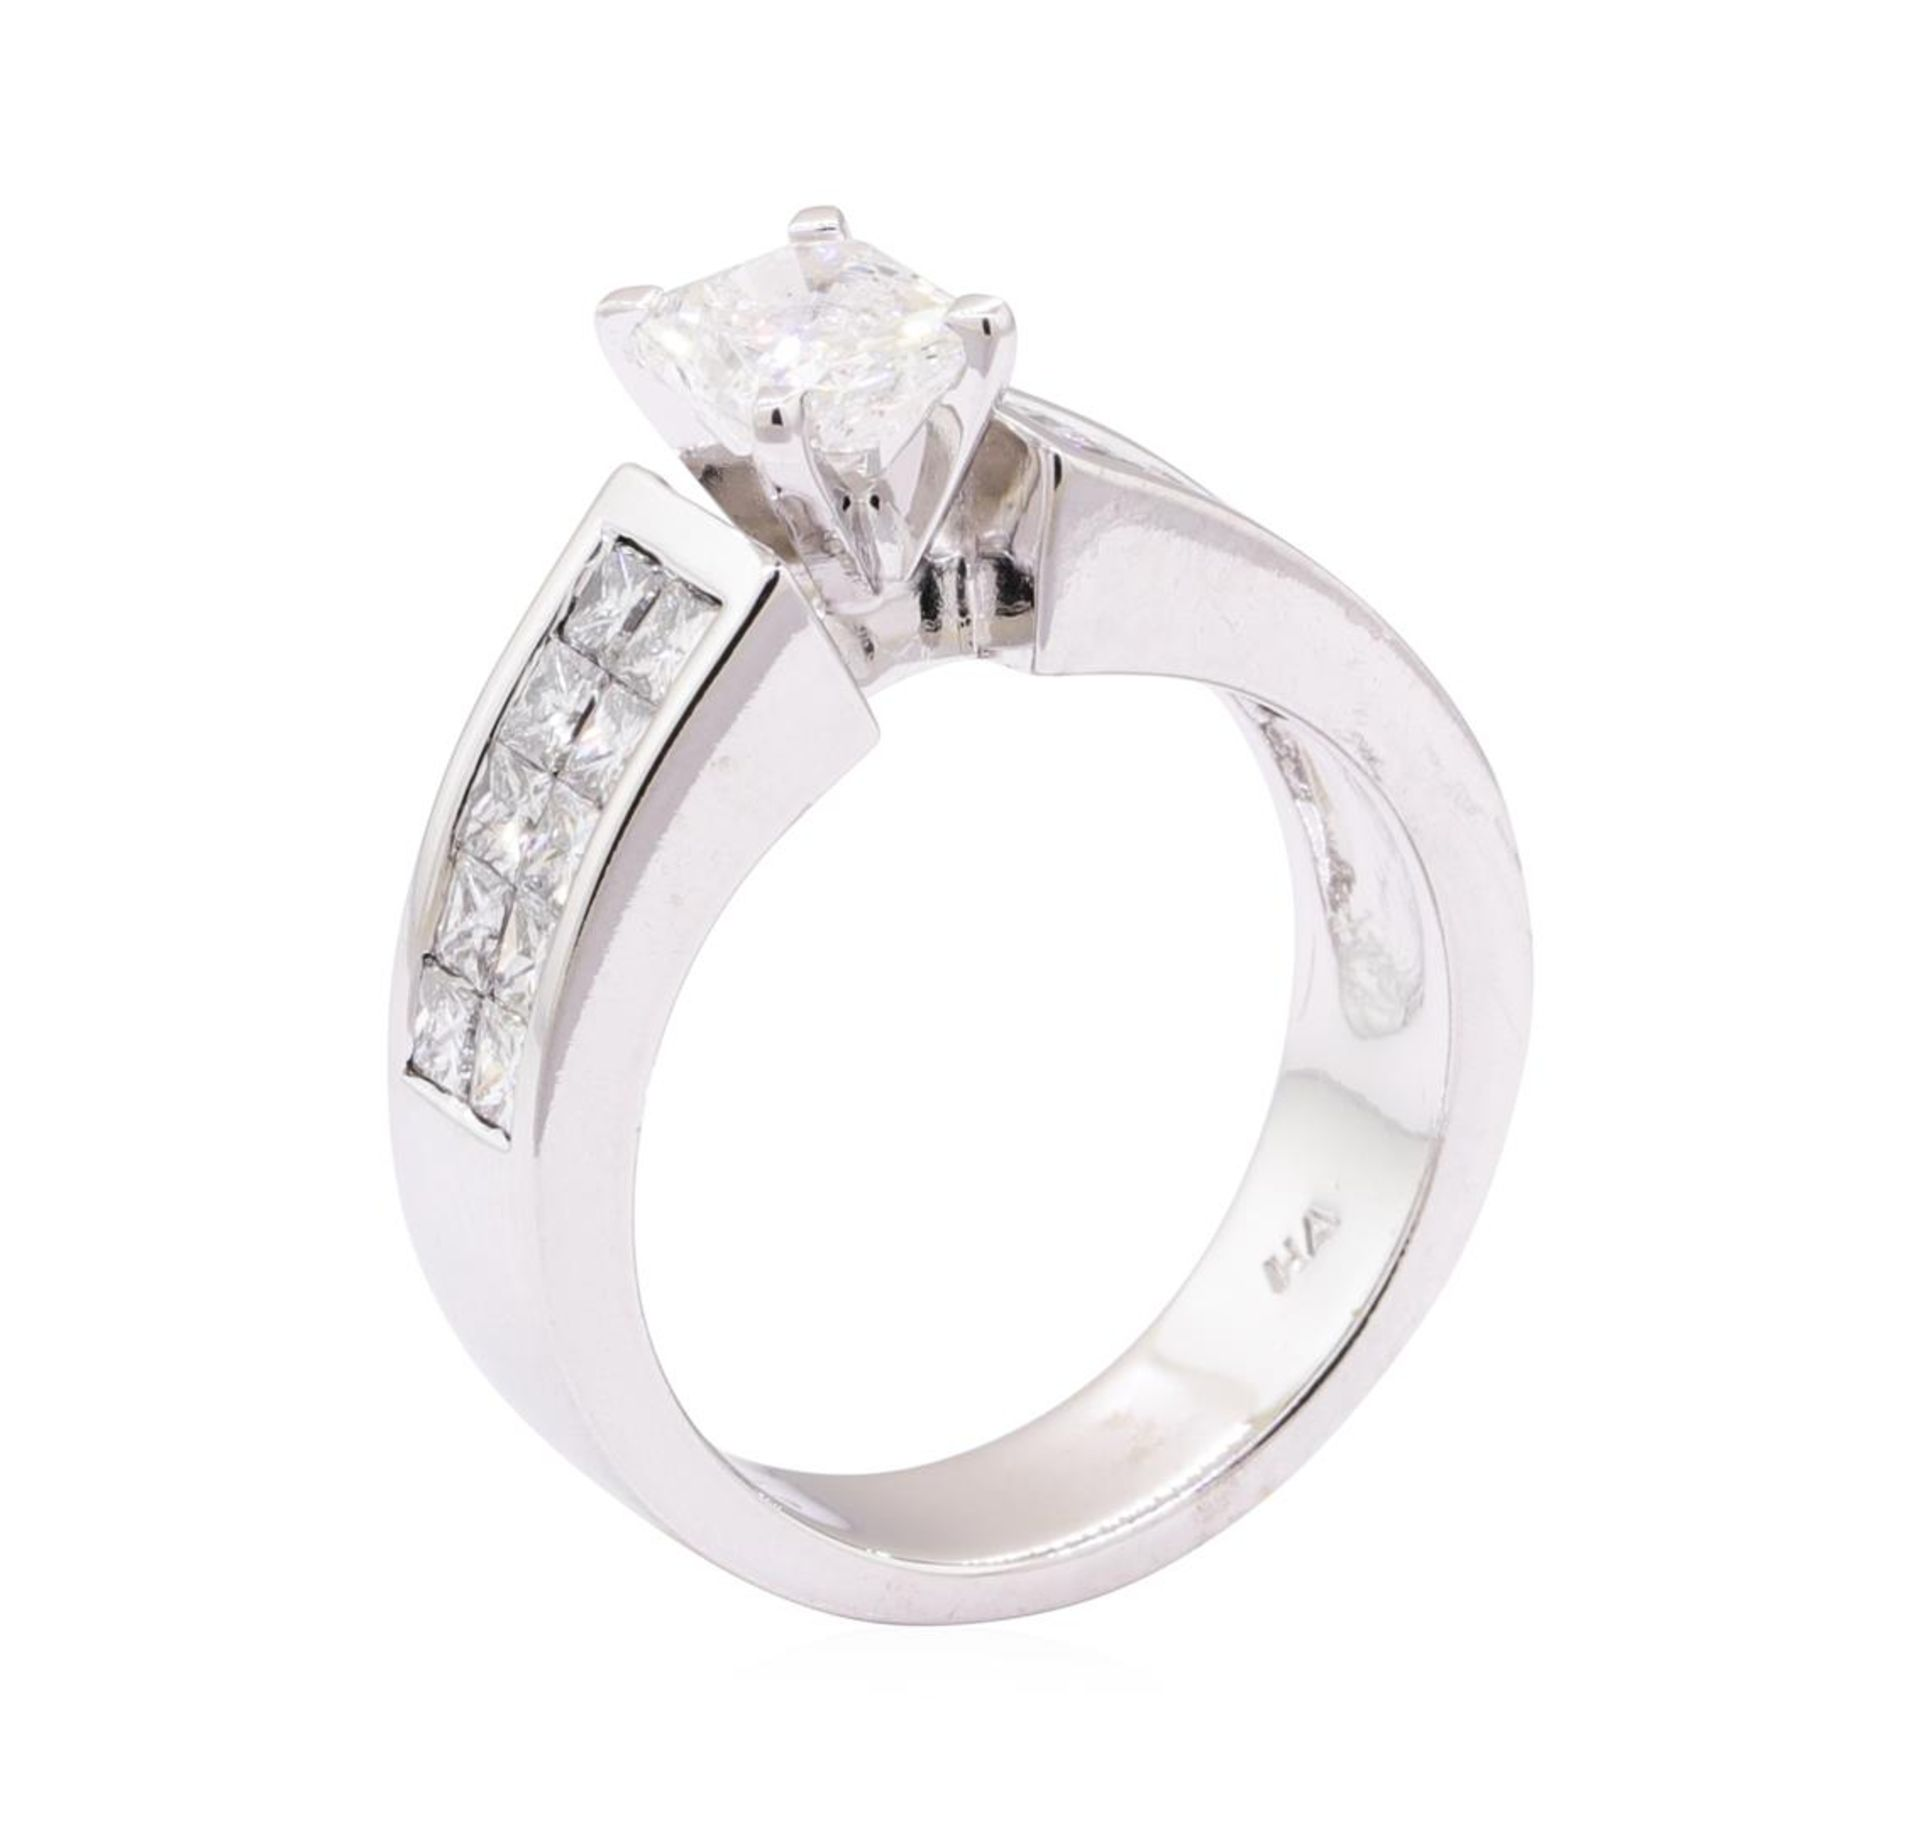 2.23 ctw Diamond Ring - 14KT White Gold - Image 4 of 5